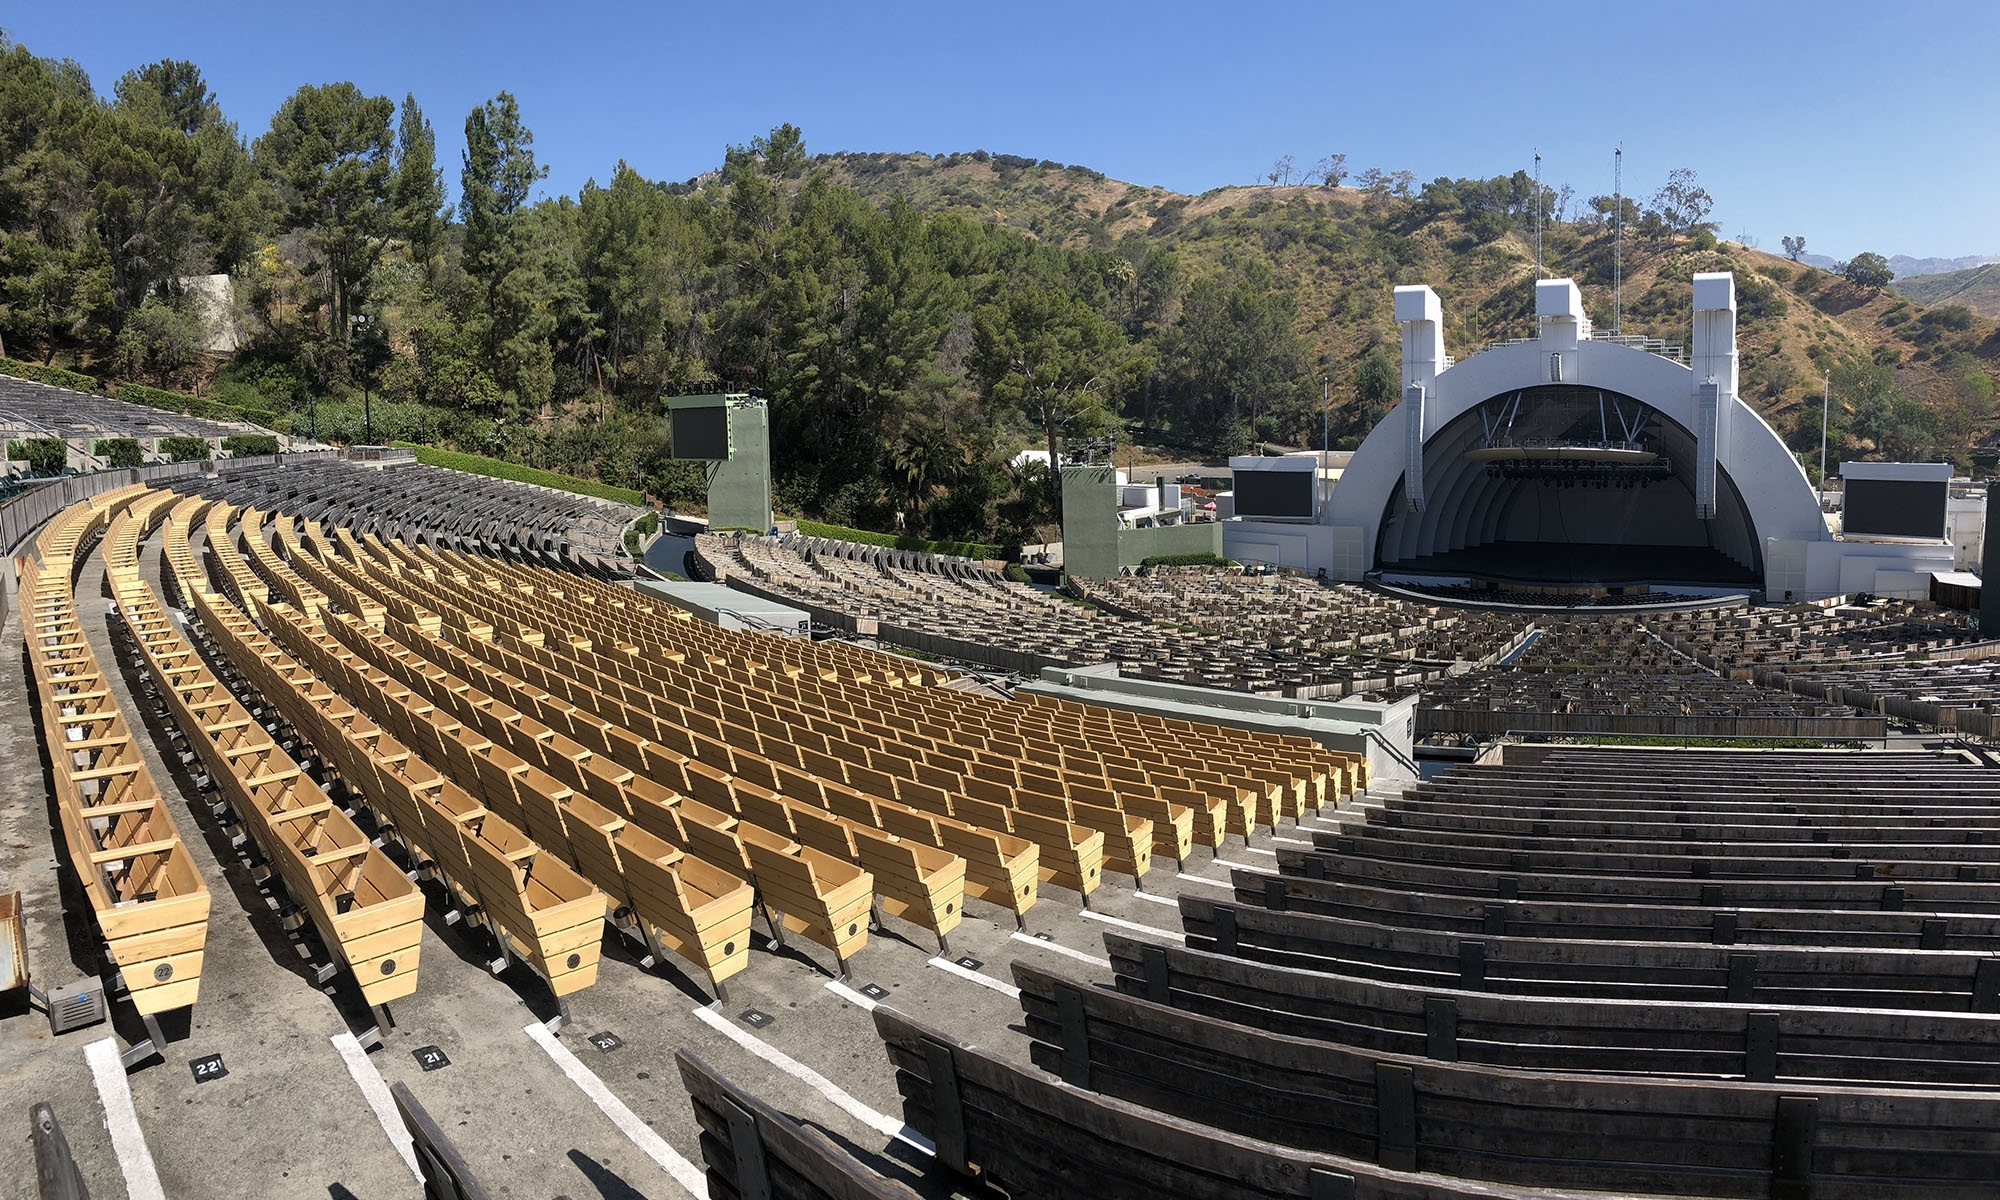 Updated Hollywood Bowl Seating Chart - Hollywood Bowl Tips regarding Hollywood Bowl Seating Chart Super Seats